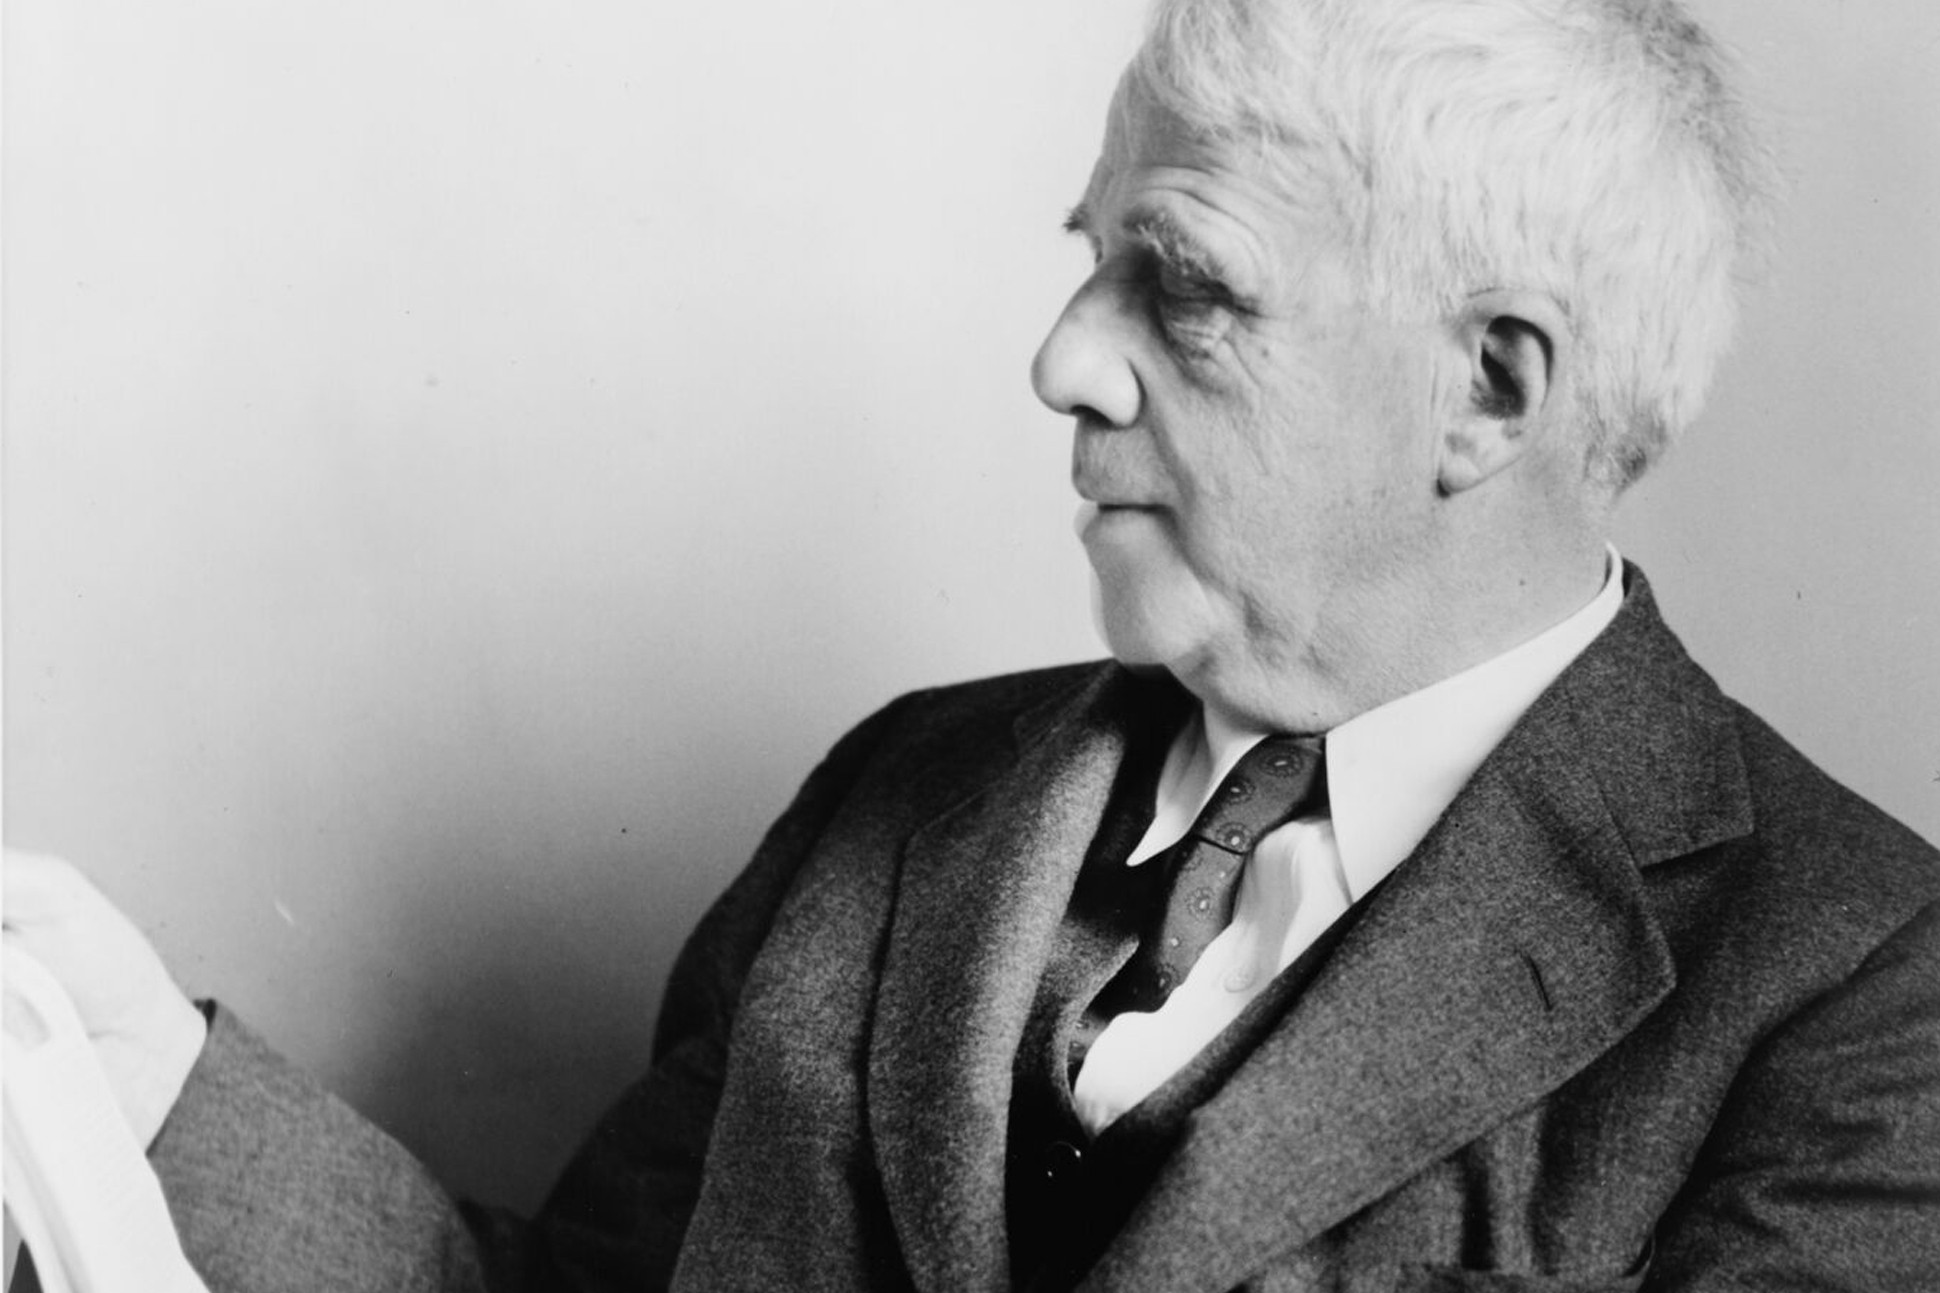 To E. T. by Robert Frost